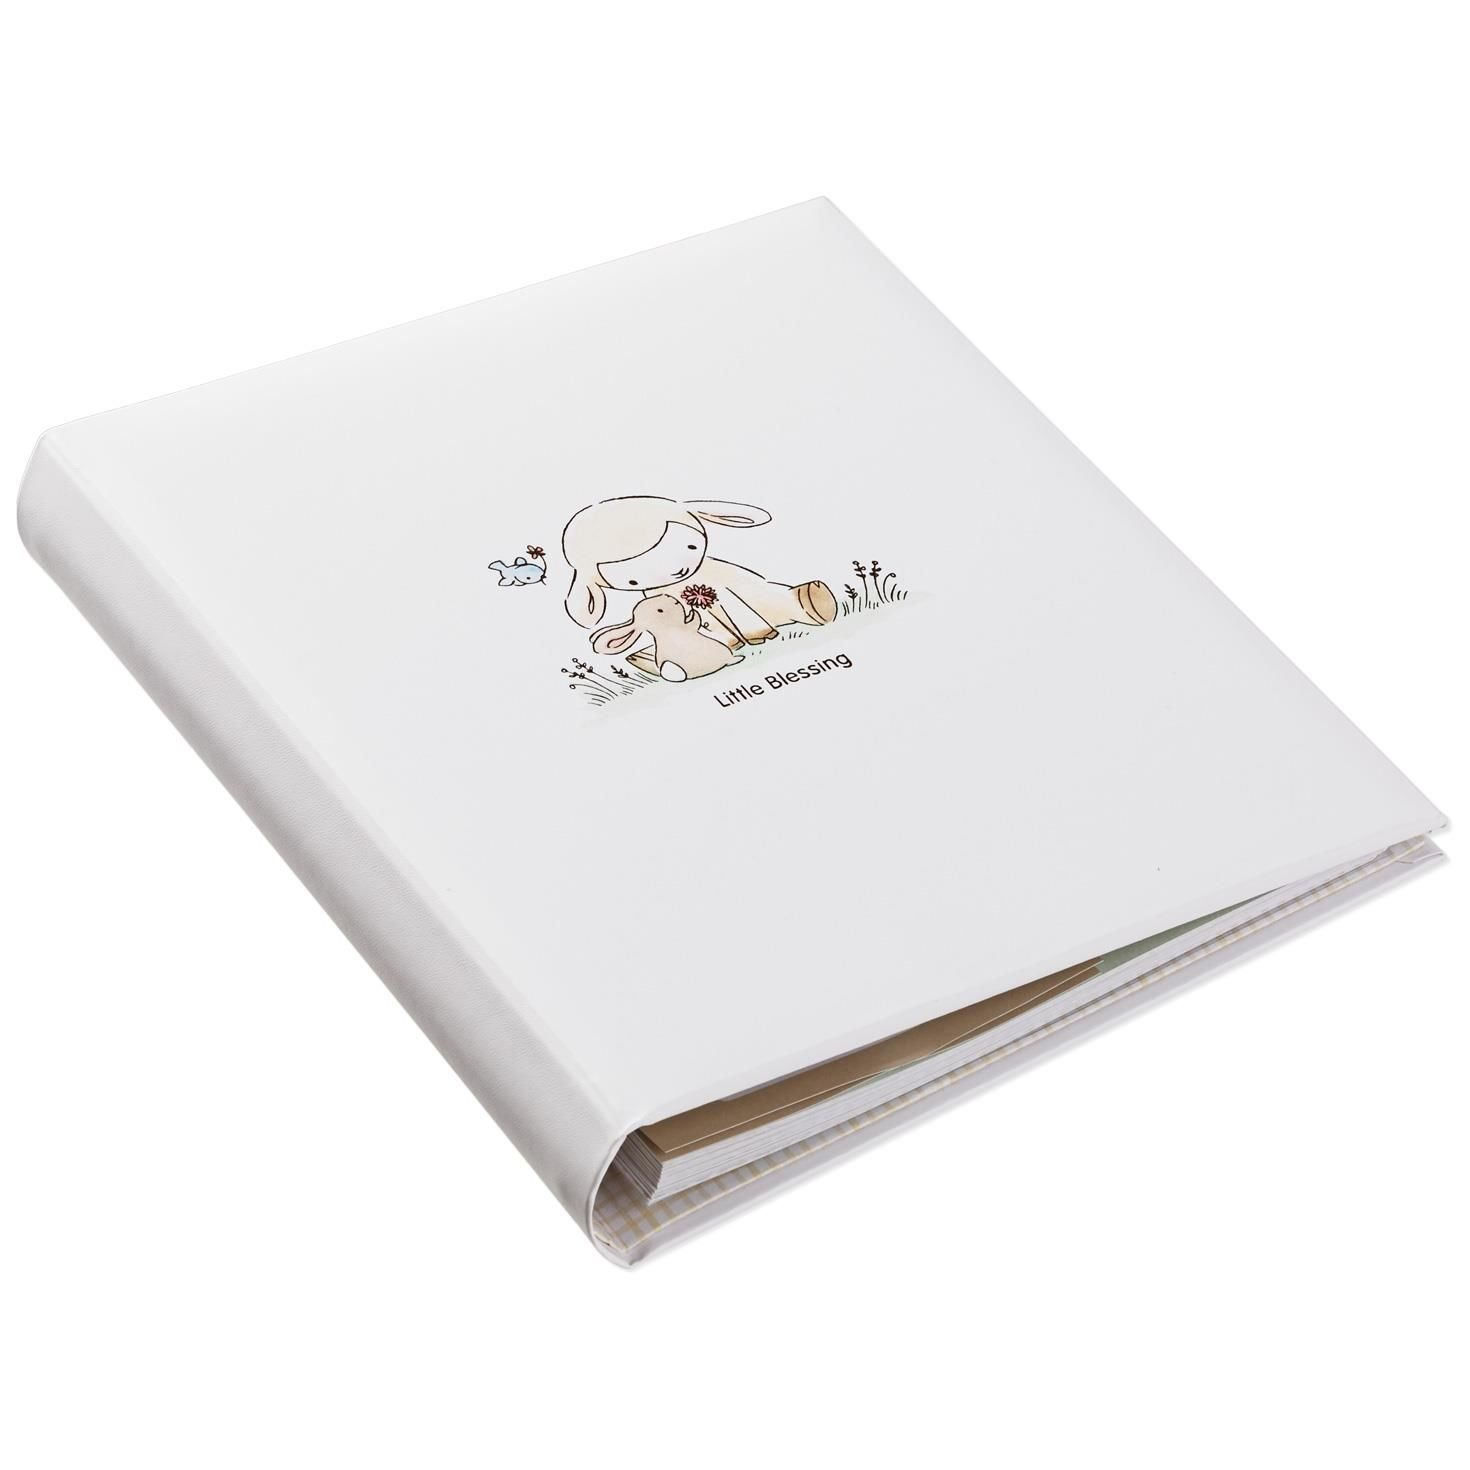 Hallmark Little Blessing Five-Year Memory Book